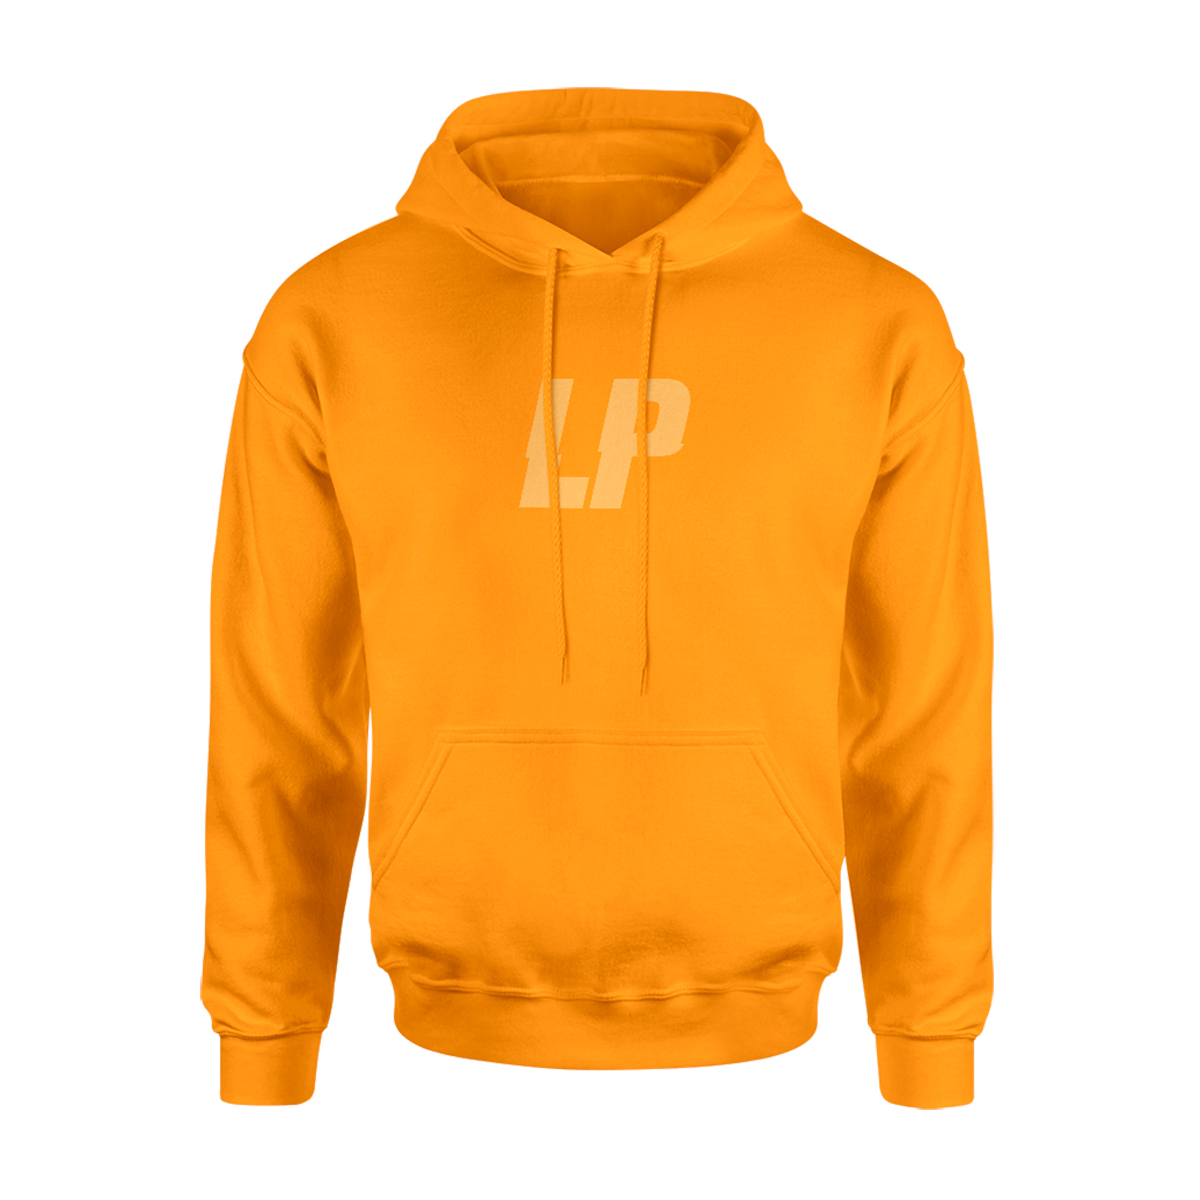 Buy Online LP - Heart To Mouth Hoodie